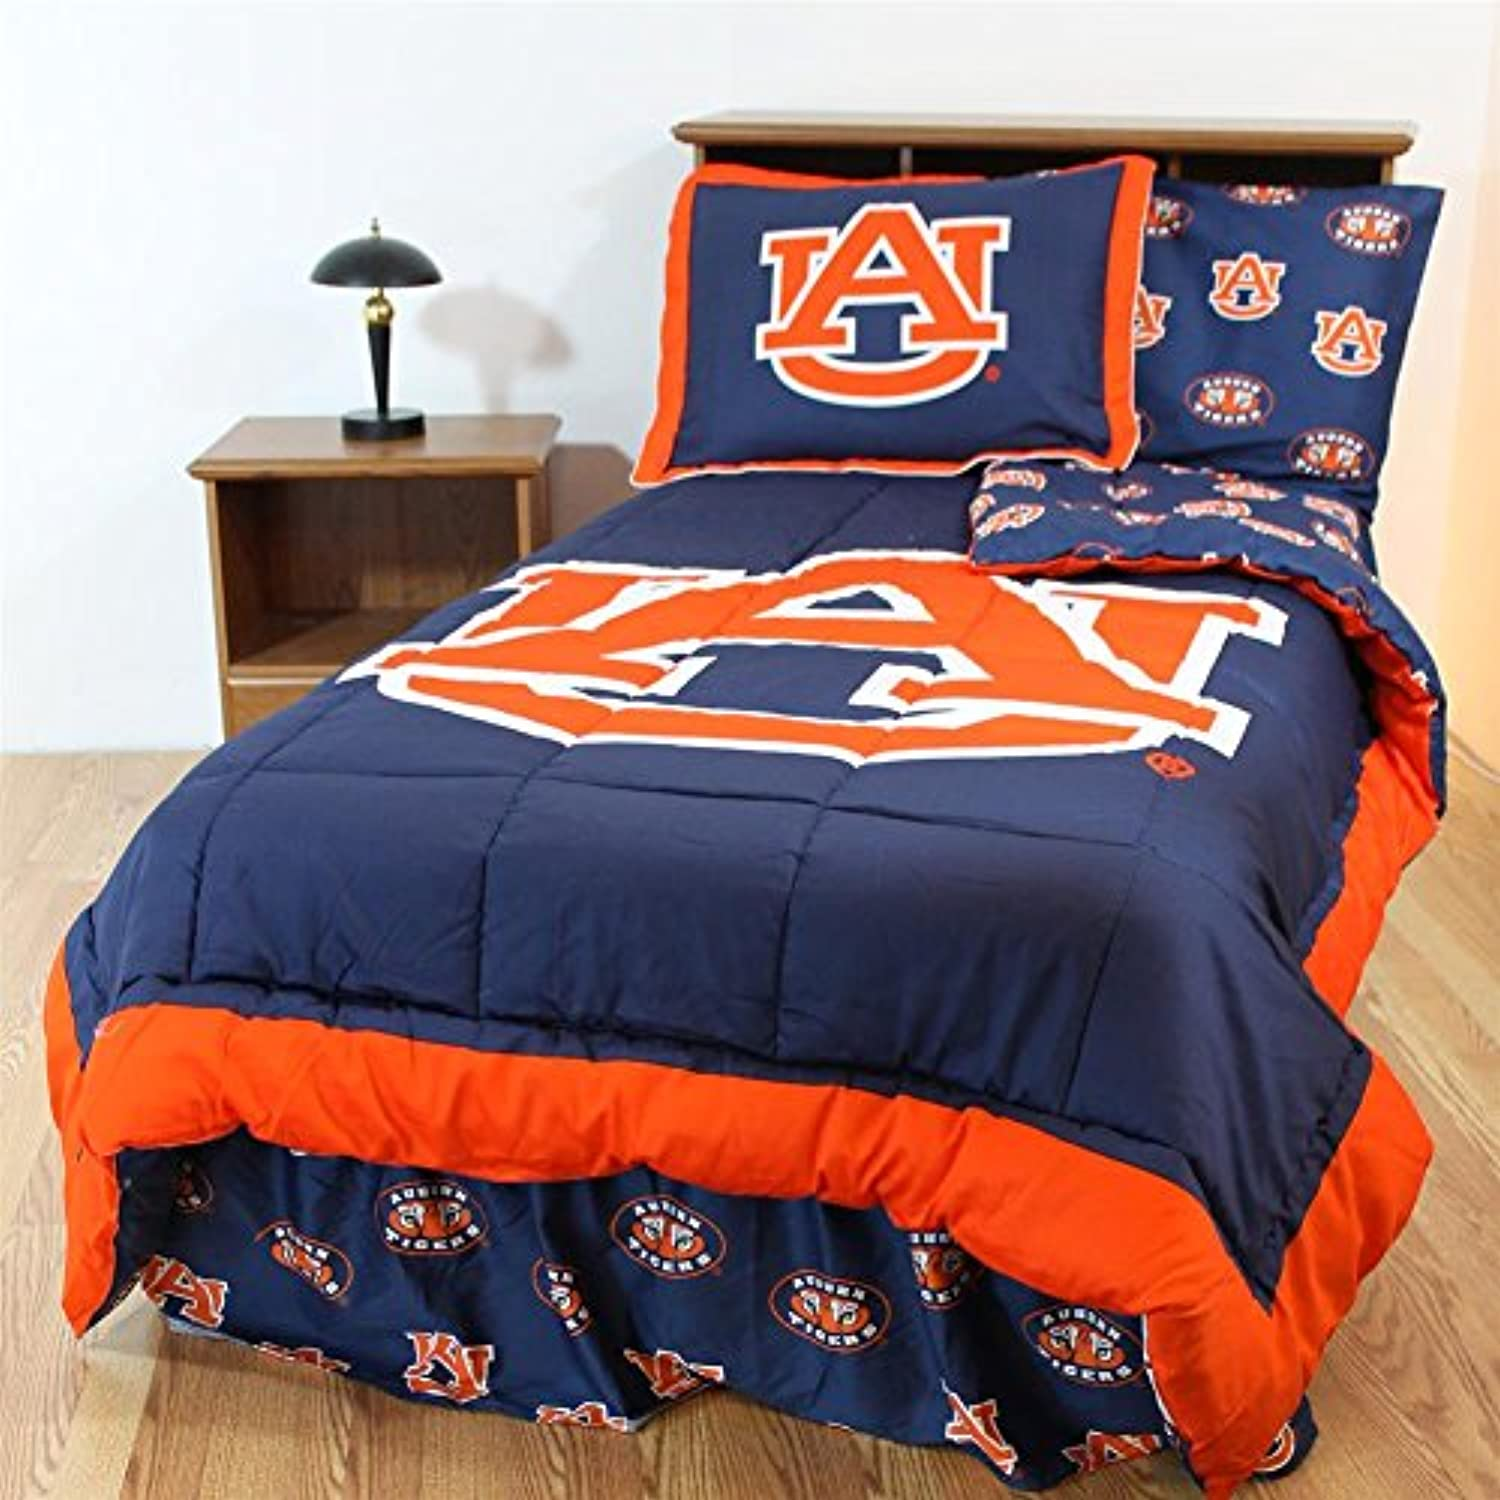 Comfy Feet AUBBBQU Auburn Bed in a Bag Queen - With Team Colored Sheets